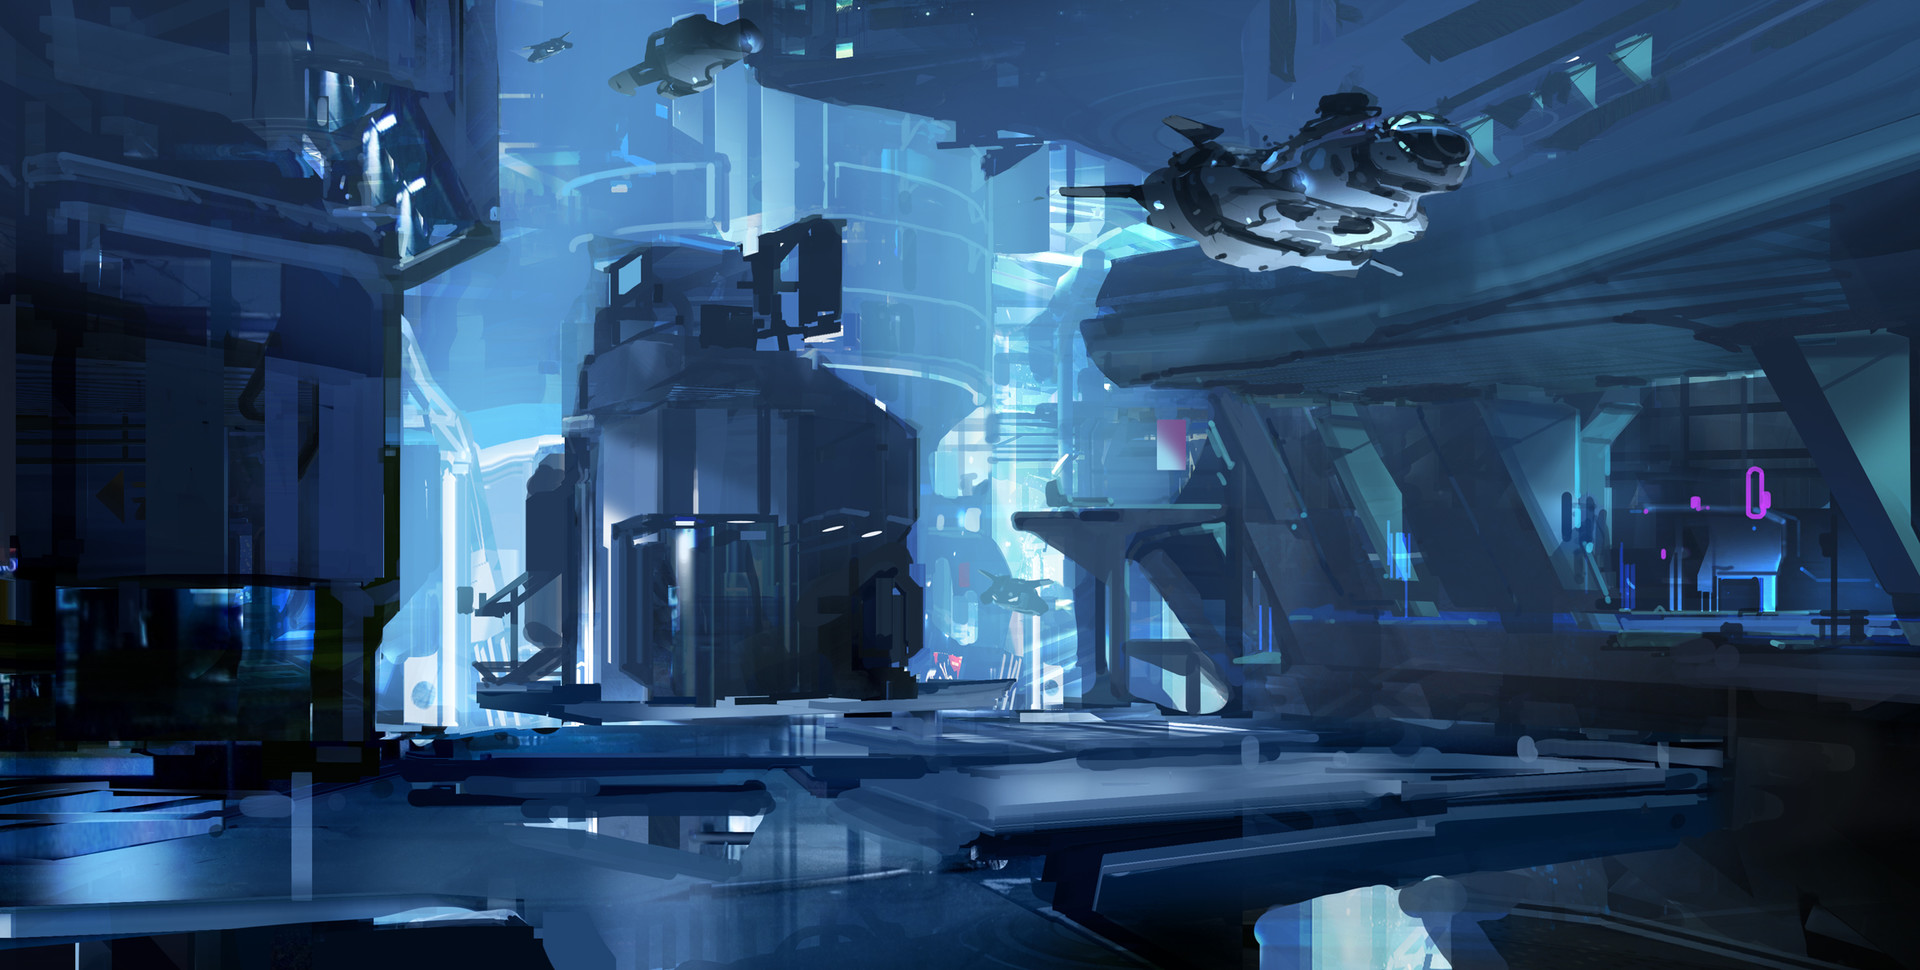 Sparth halo5 city concept